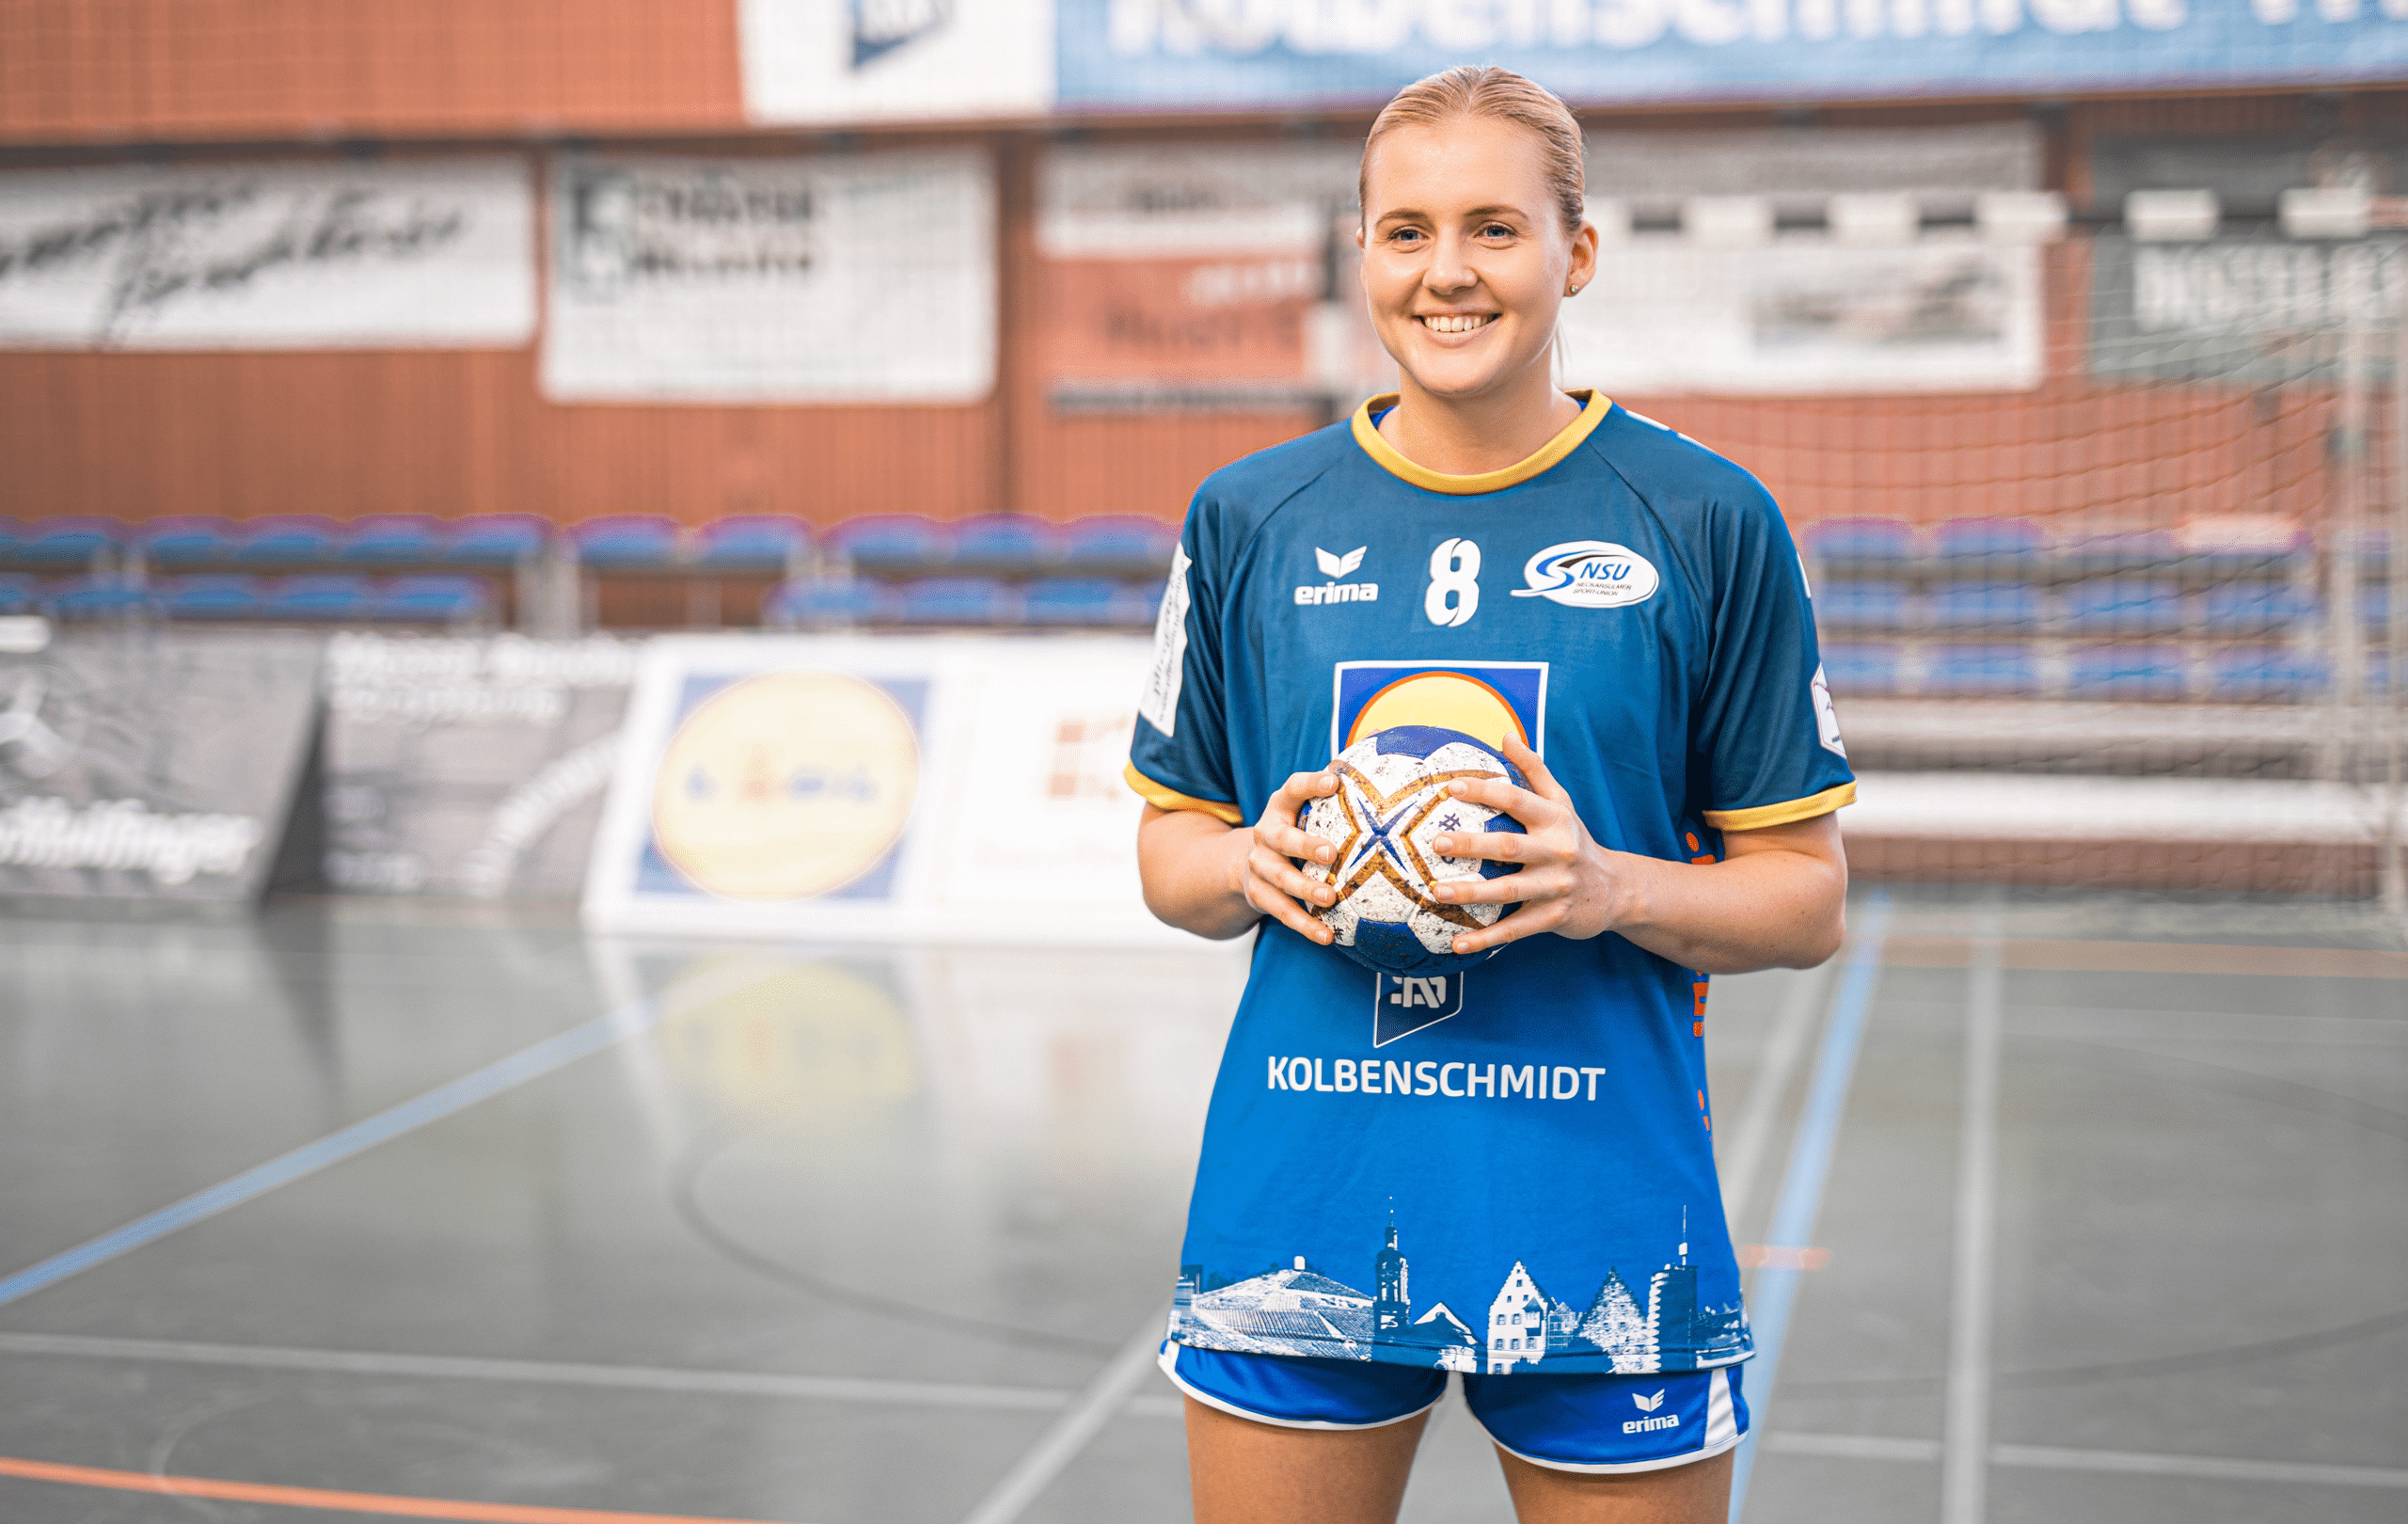 Photo Chantal Wick: Joueuse de handball profesionnelle suisse